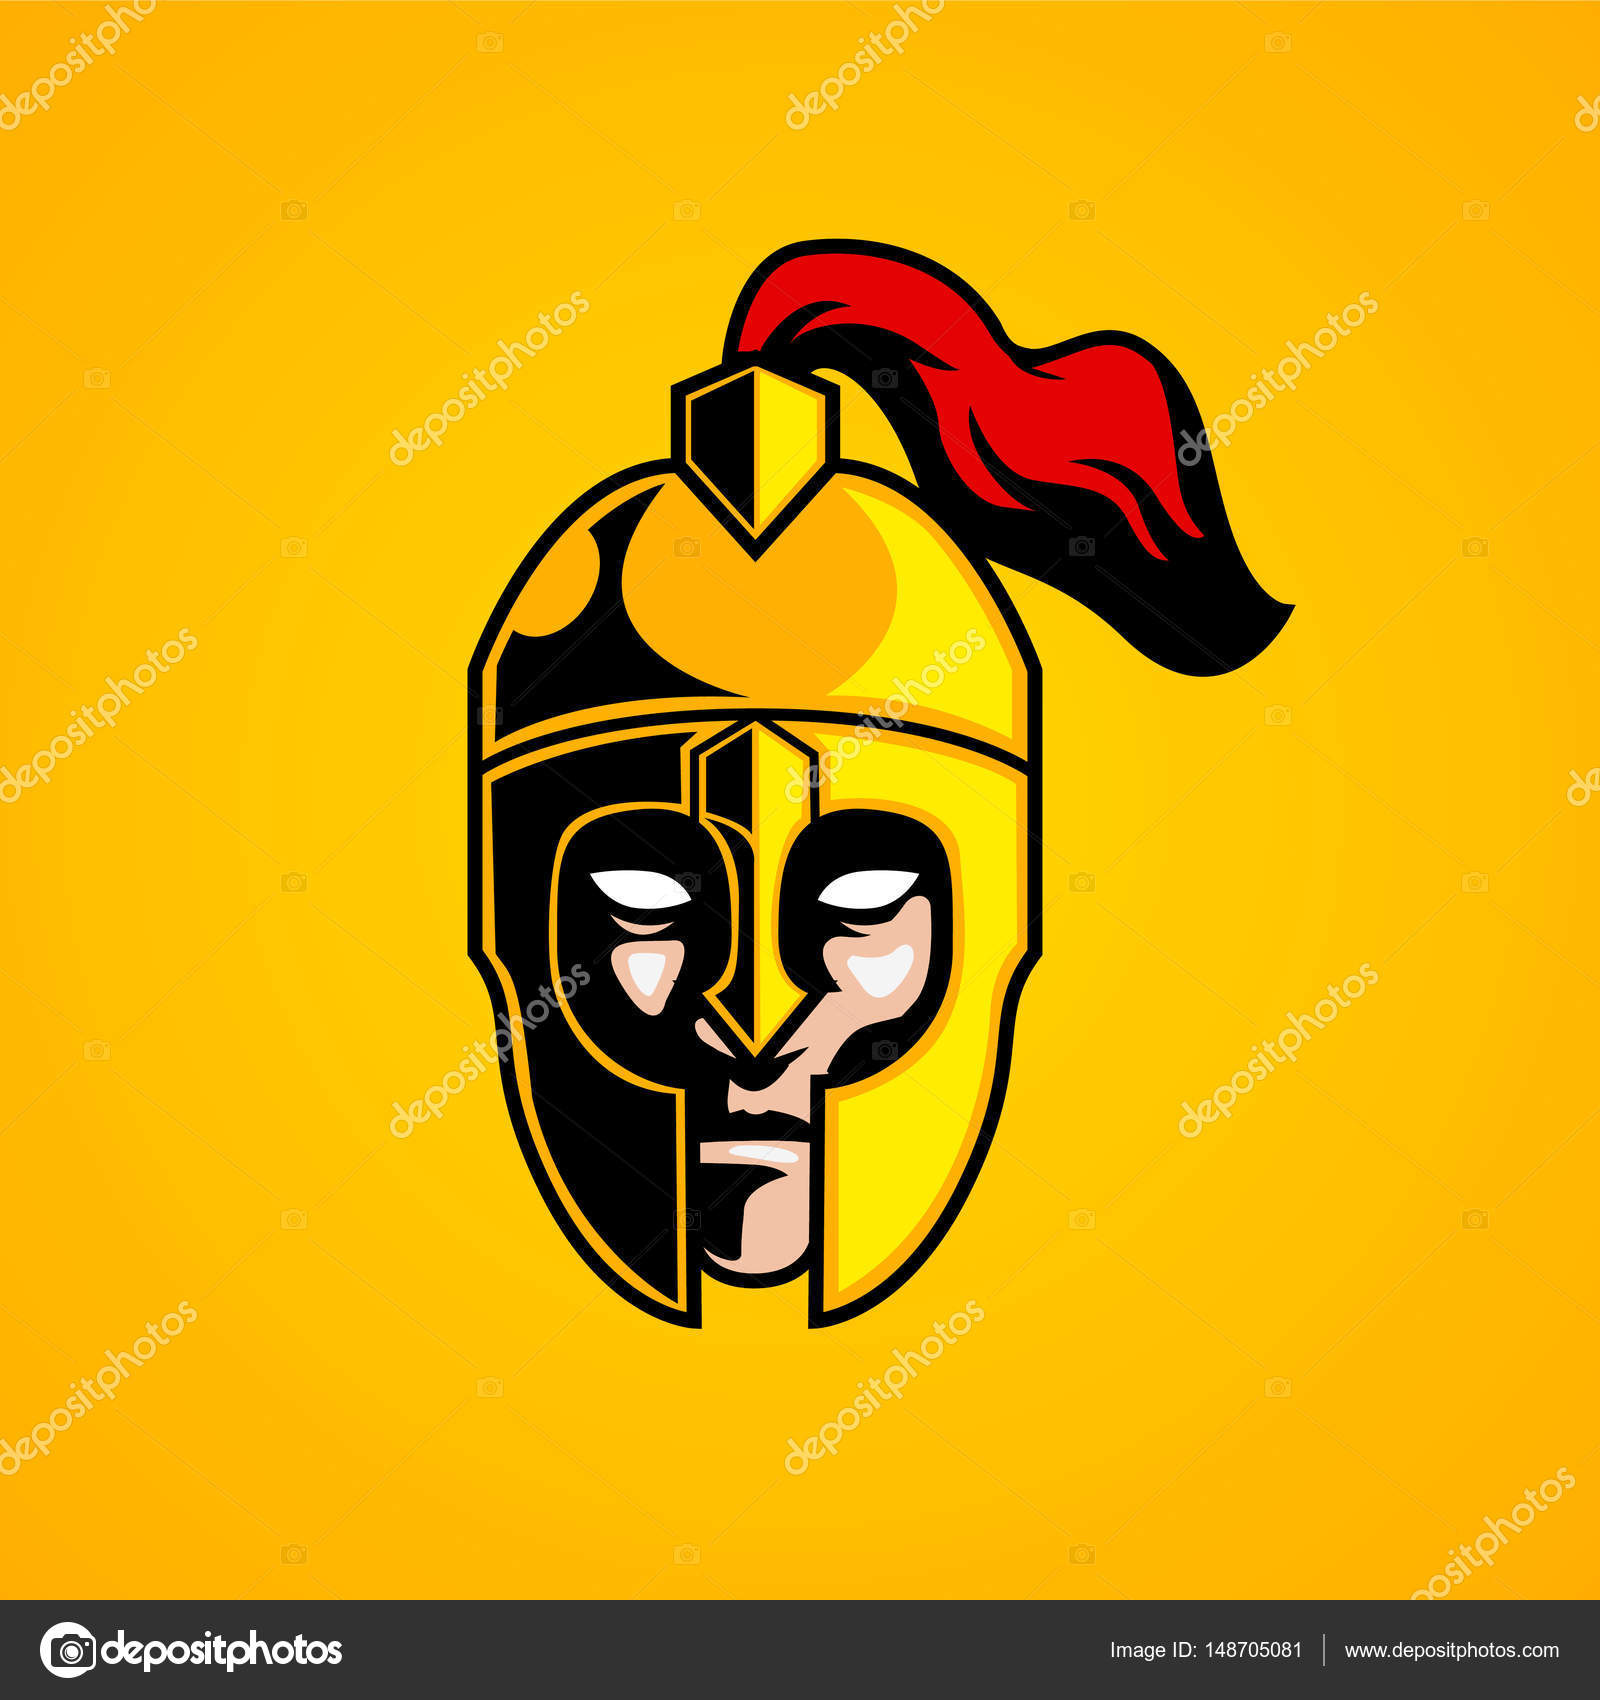 knight head logo mascot stock vector ironstone72 148705081 rh depositphotos com knight horse head logo